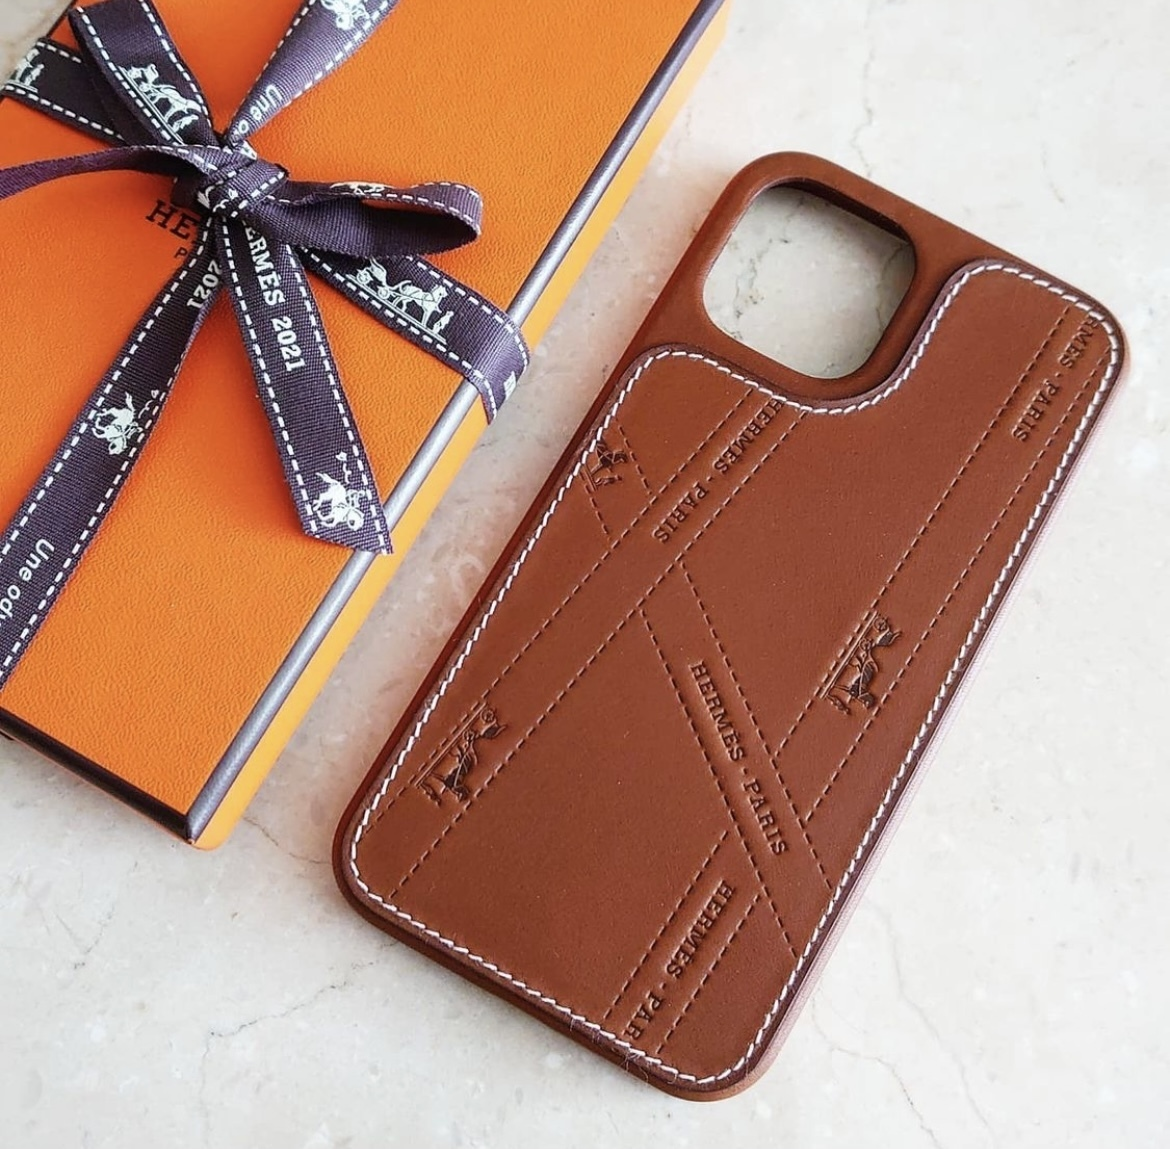 【HERMES】ボルデュック☆iPhone12・12Proケース (HERMES/iPhone・スマホケース) H0007441A34